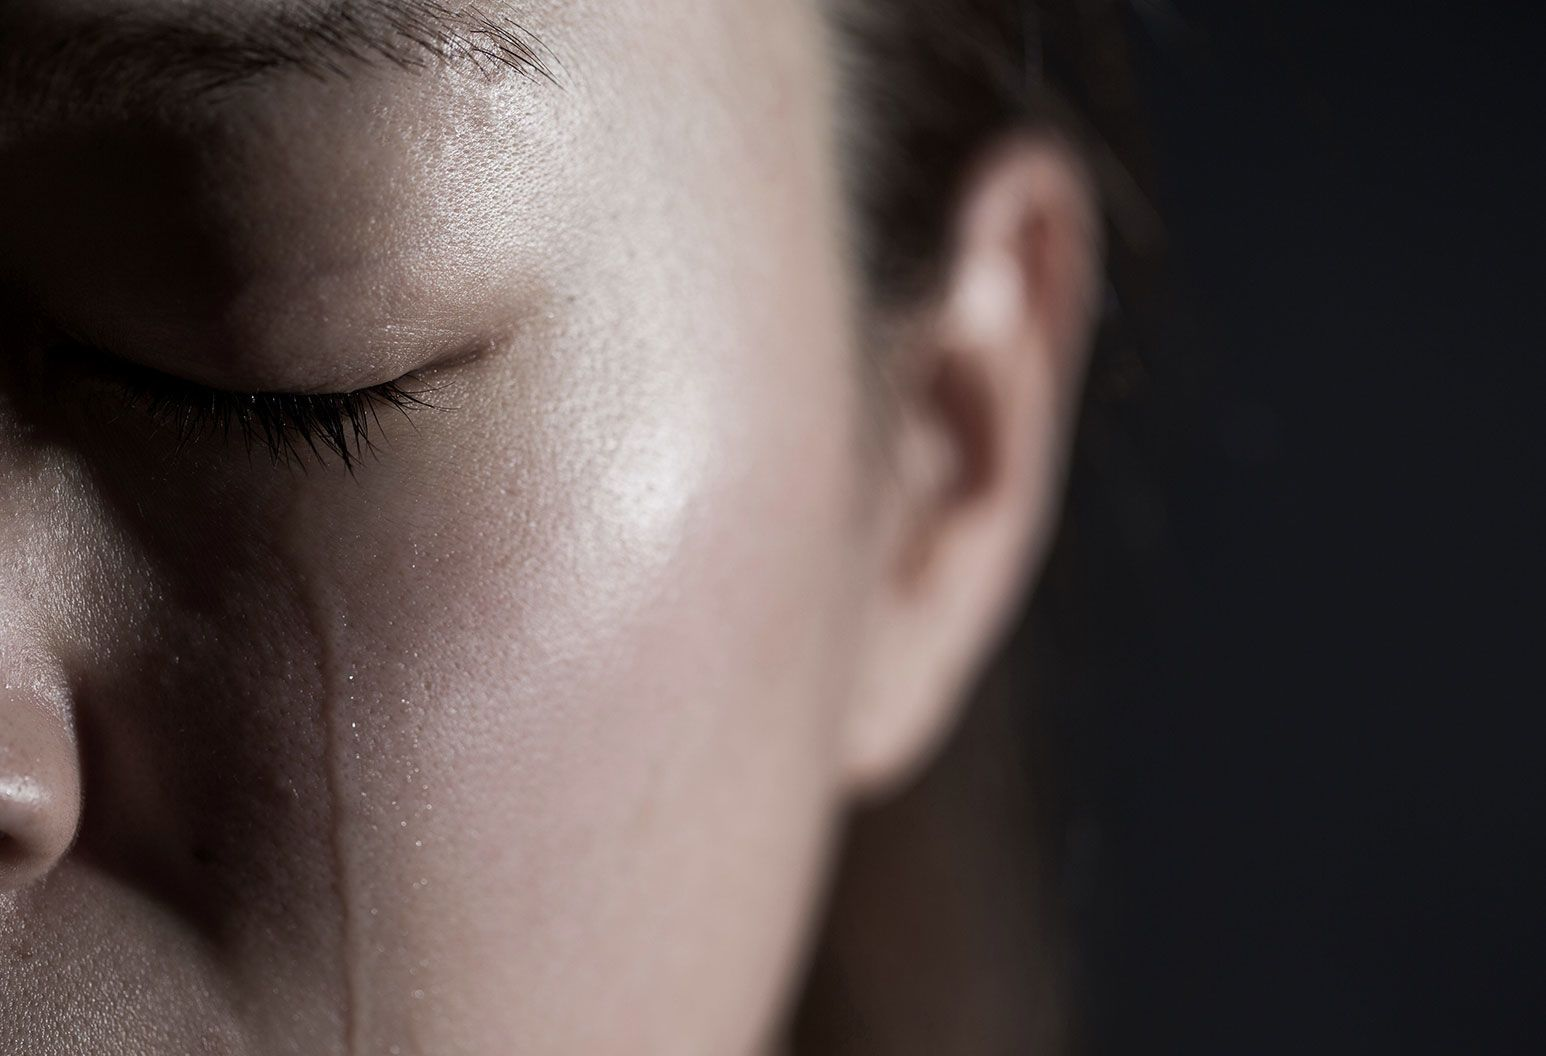 Close up of half a woman's face with her eyes closed and a tear trailing down her face. She is also in a dark room.